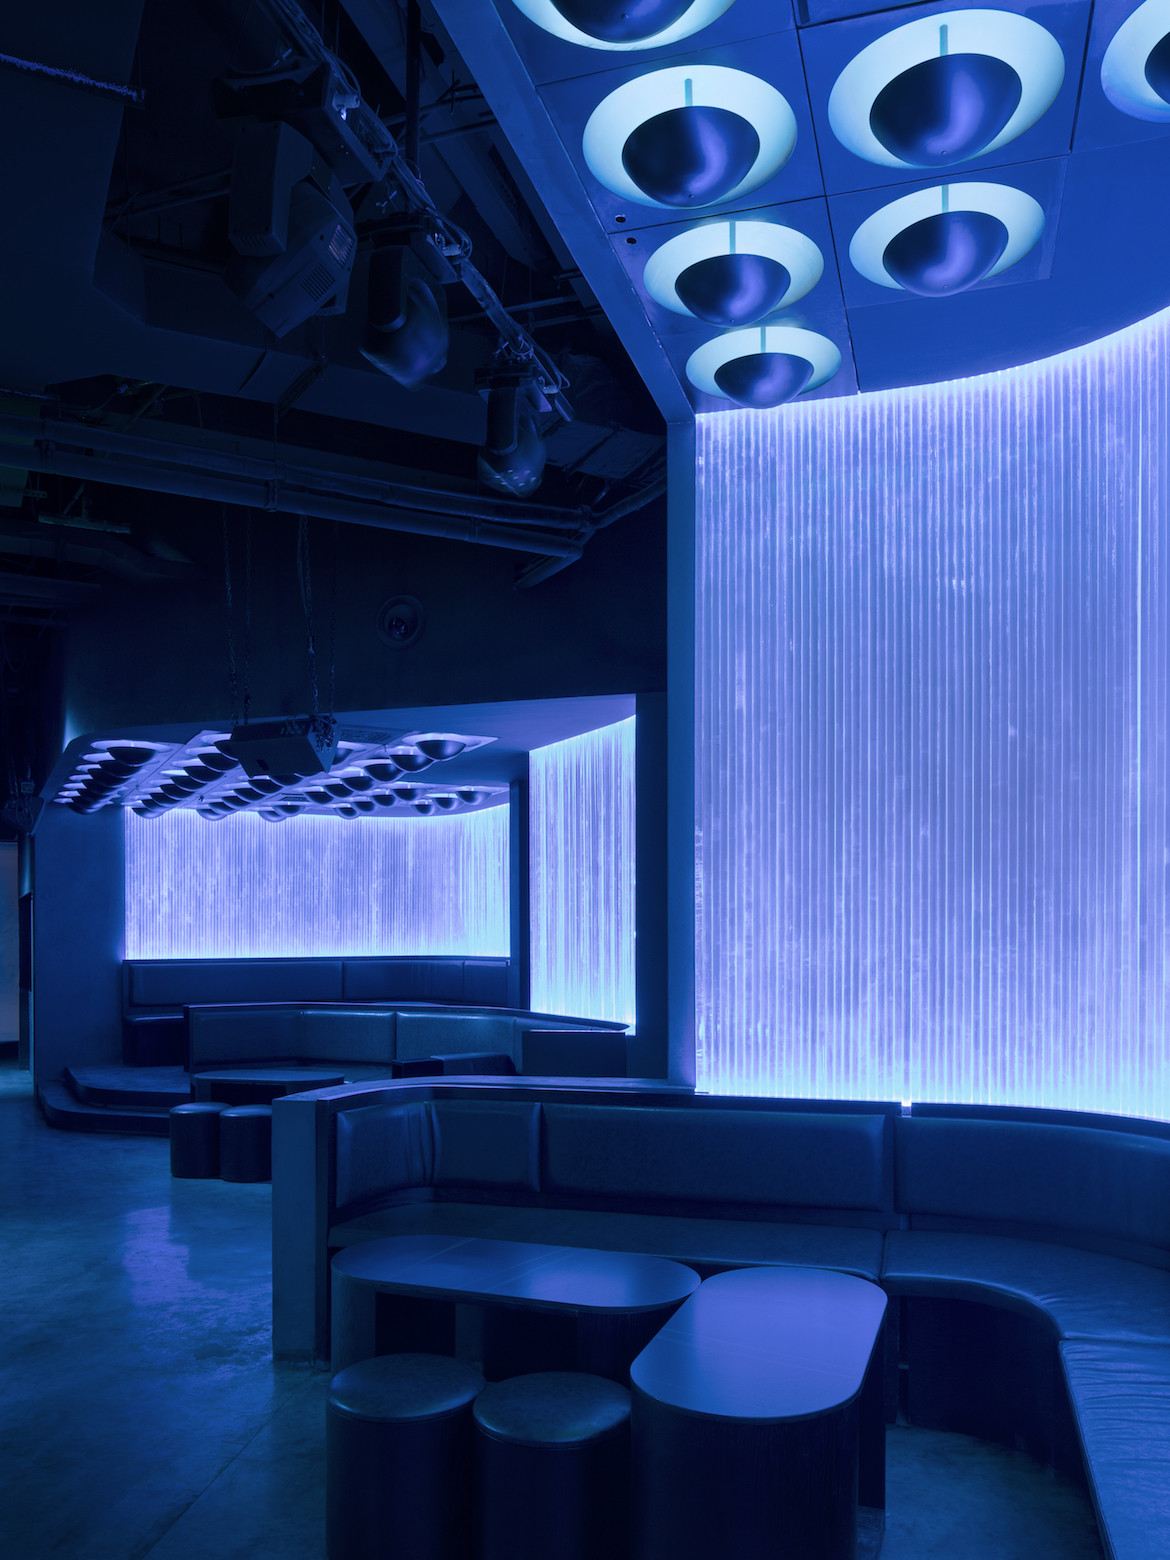 Subtle lighting casts a blue glow over Potent nightclub.